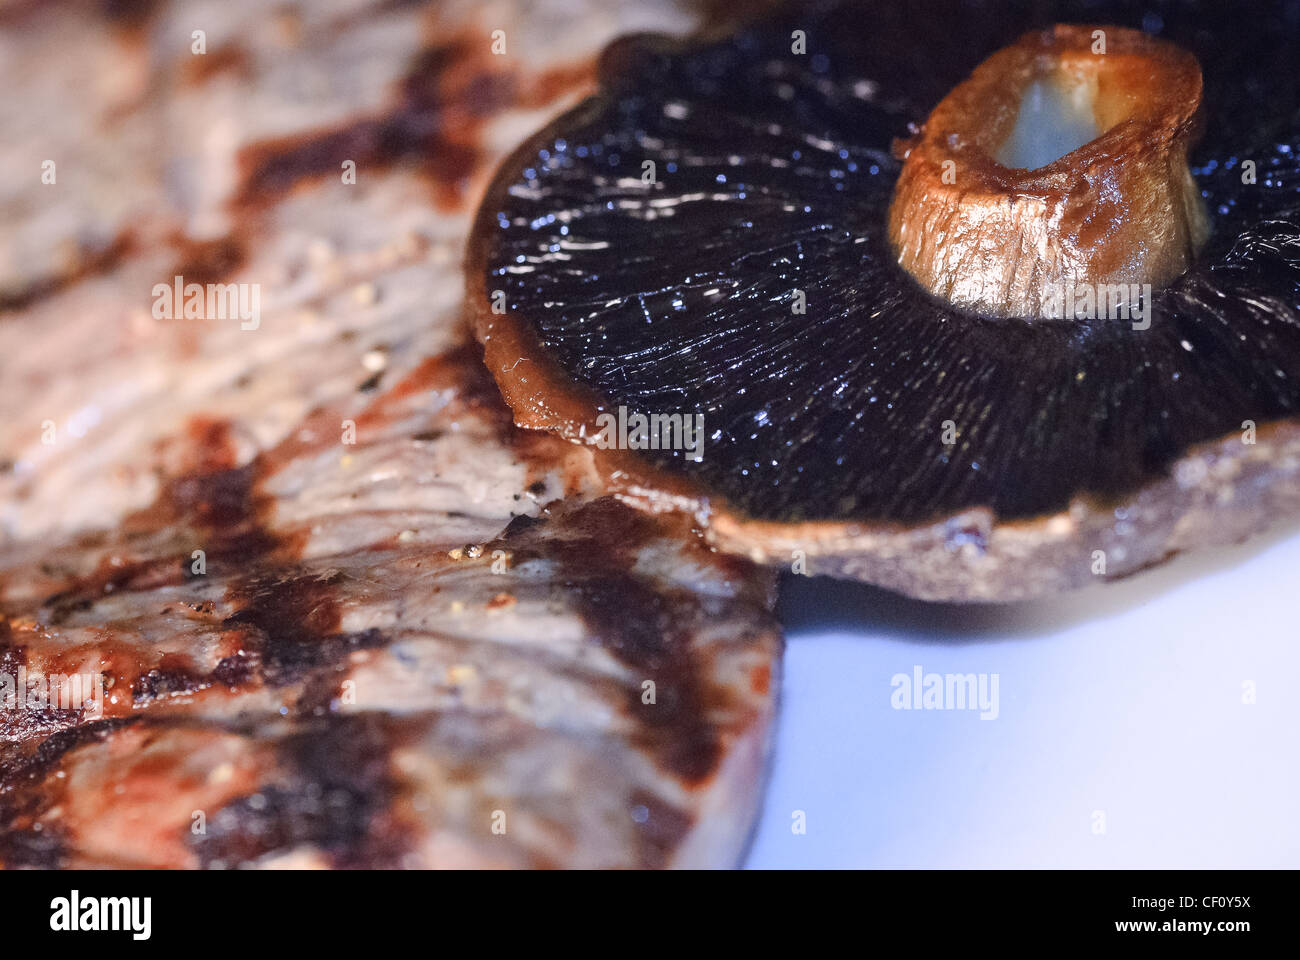 A meal containing mushrooms and steak - Stock Image